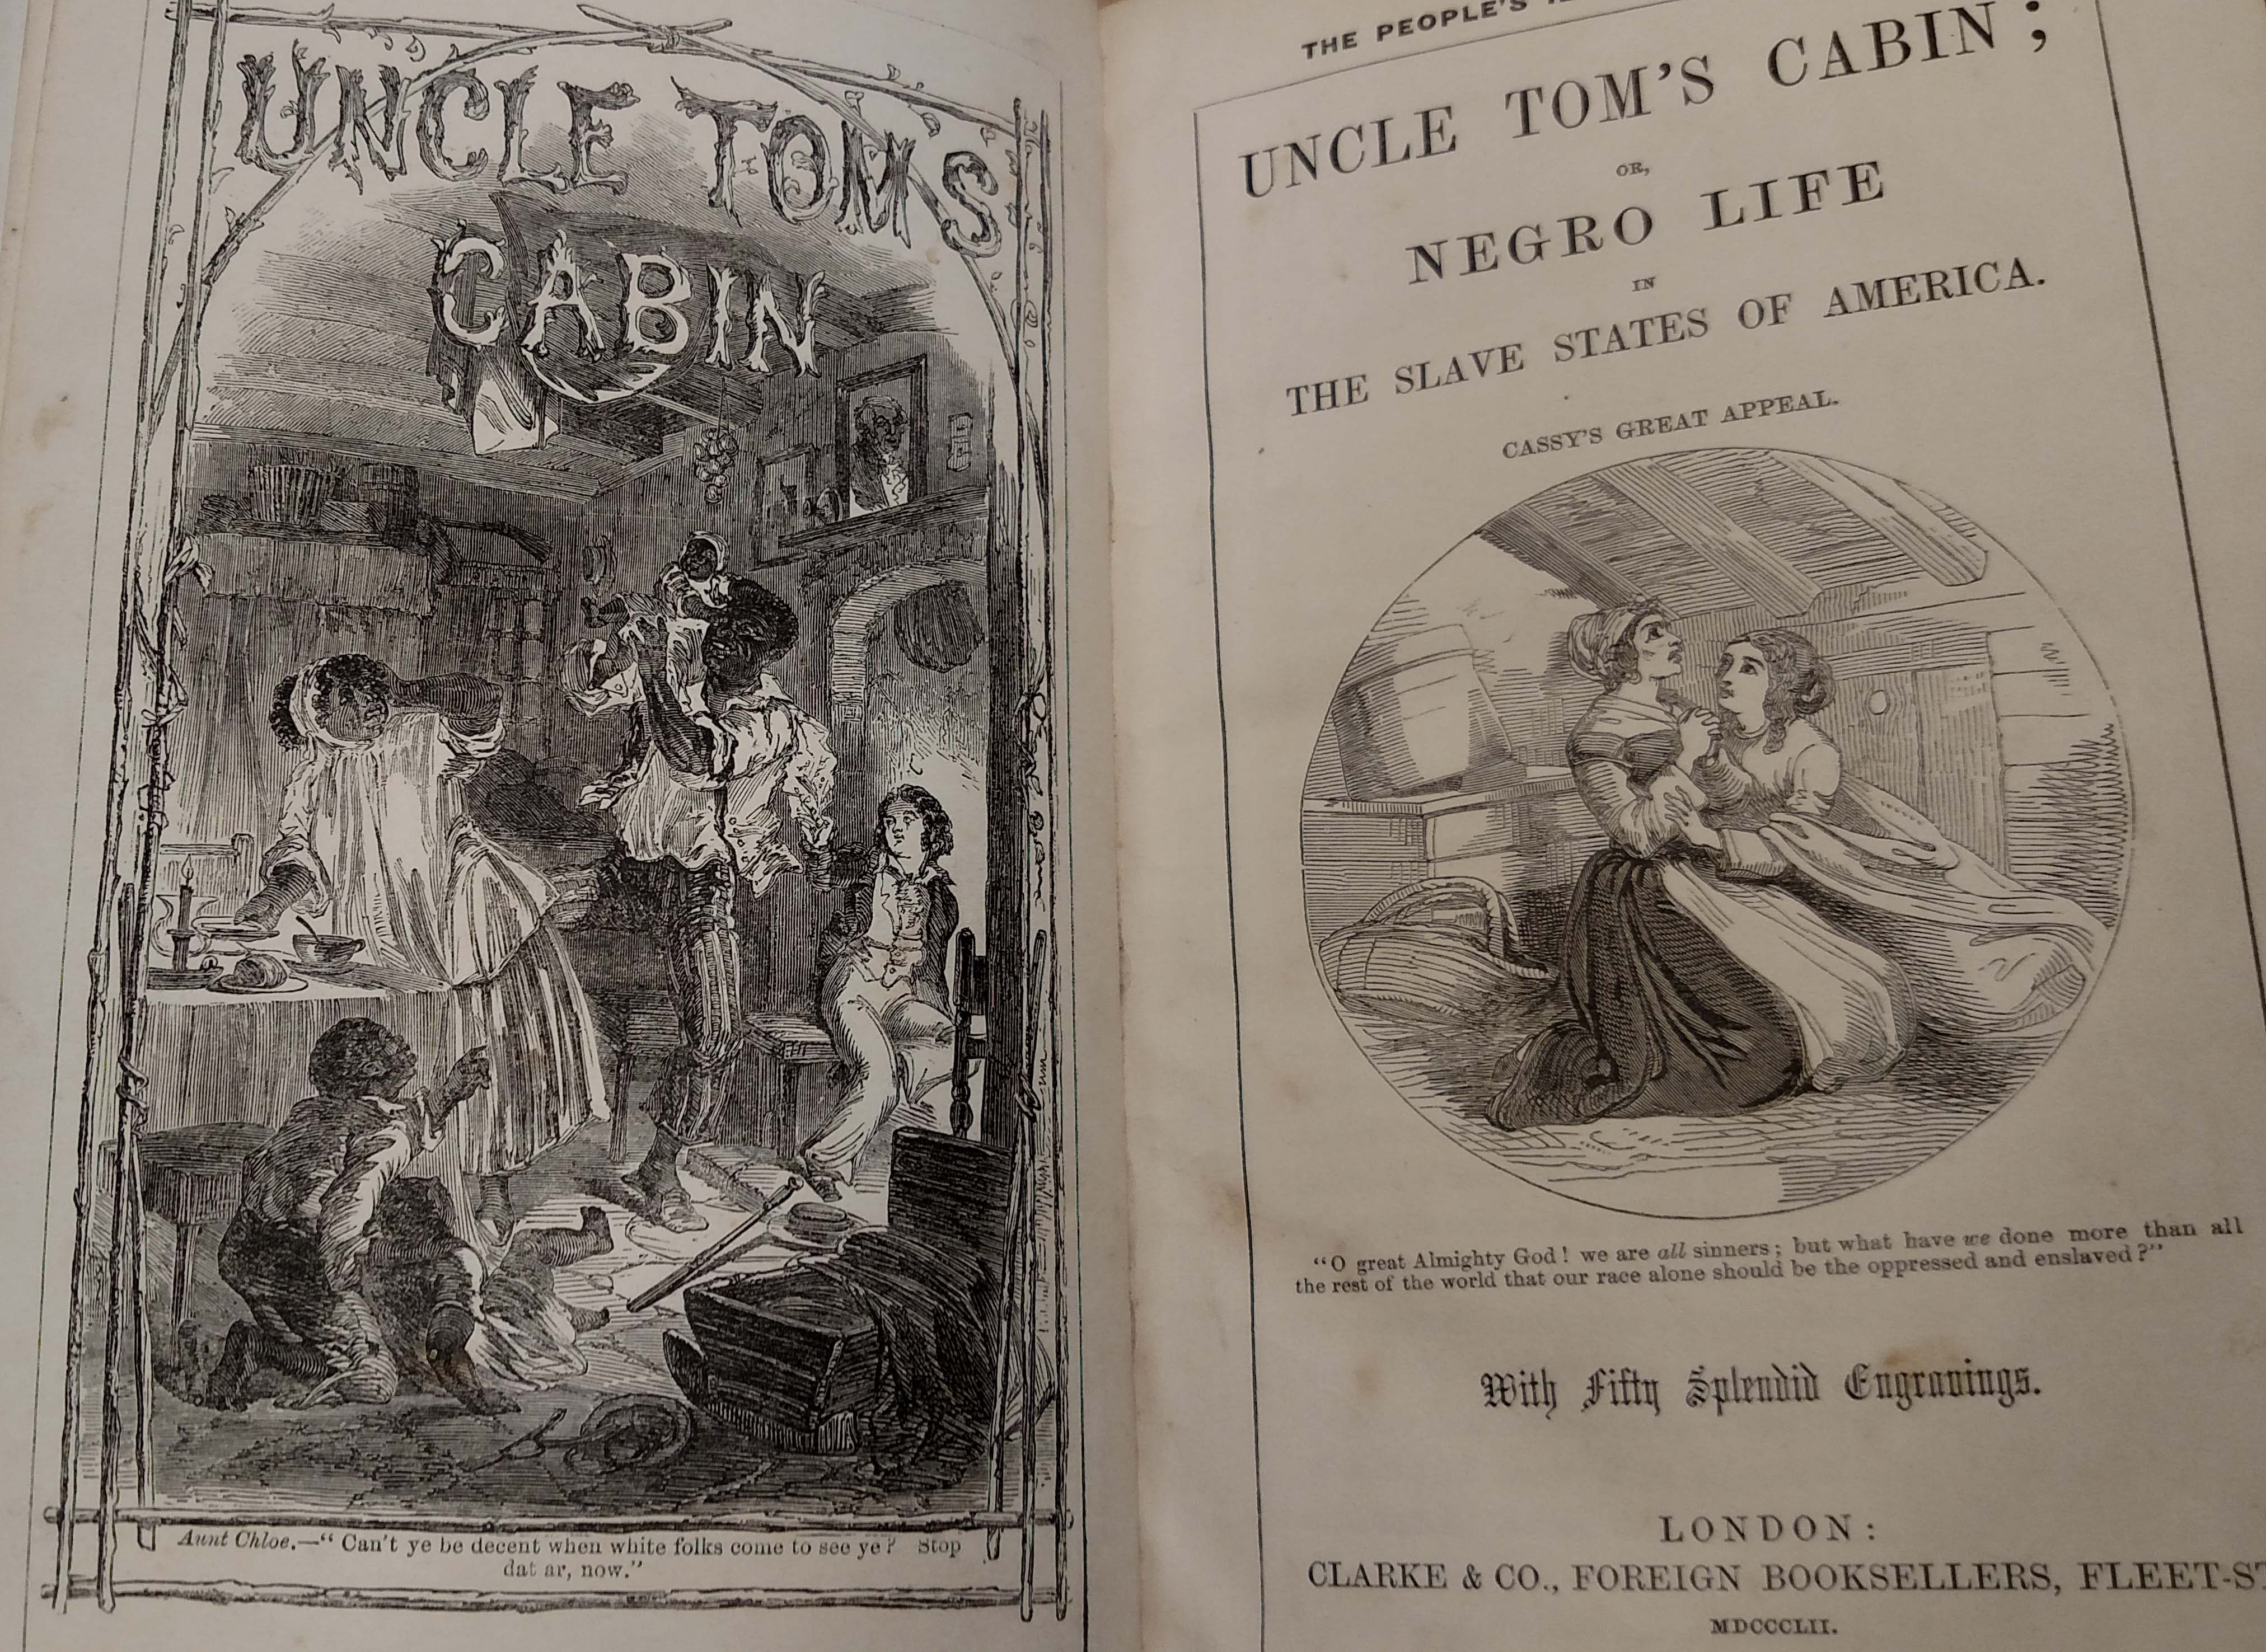 Frontispiece from the 1852 illustrated edition of Uncle Tom's Cabin